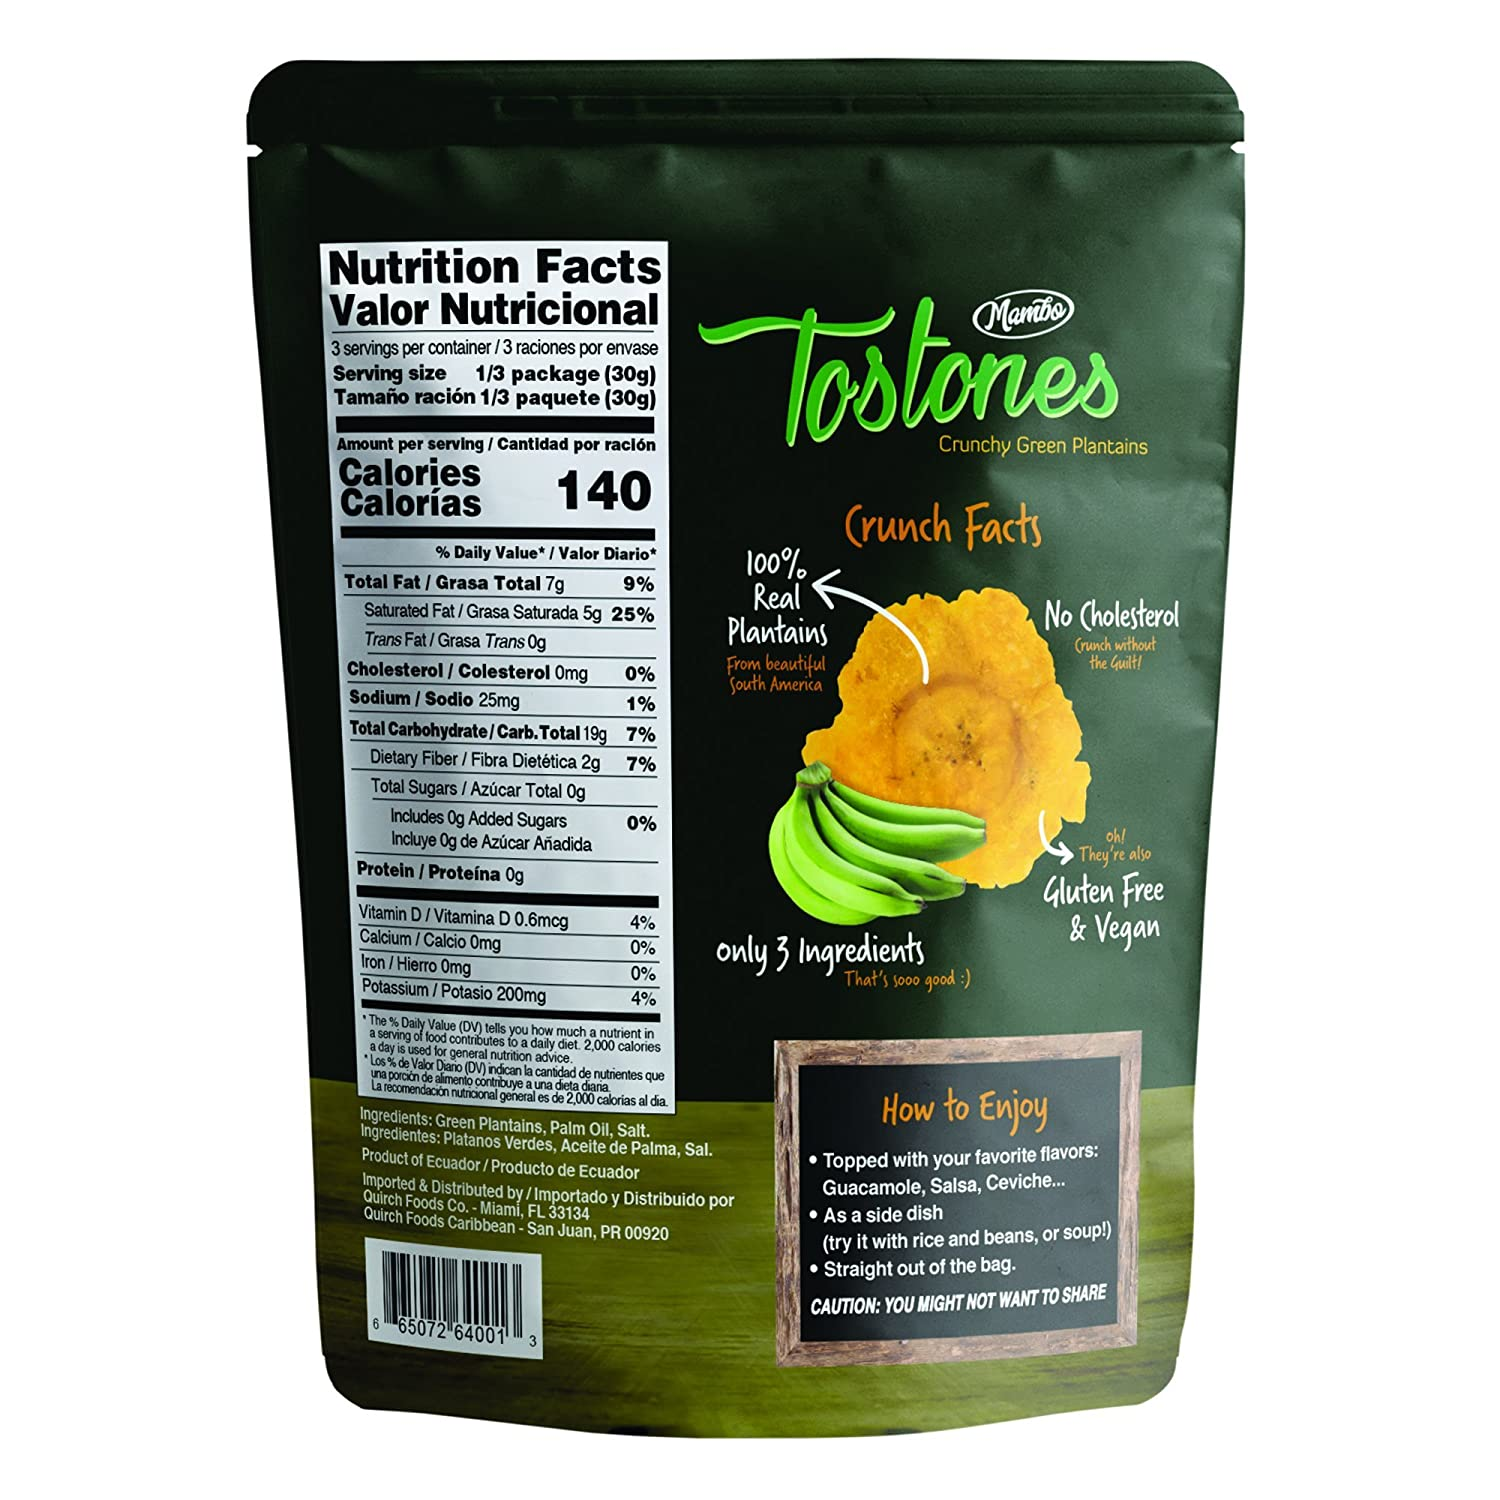 Amazon.com: Mambo Tostones, All-Natural Green Plantains Tostones, 3.53 oz unit, 1 bag, Plantain Chips, Tostones Chips, Gluten-Free, Only Three Ingredients ...